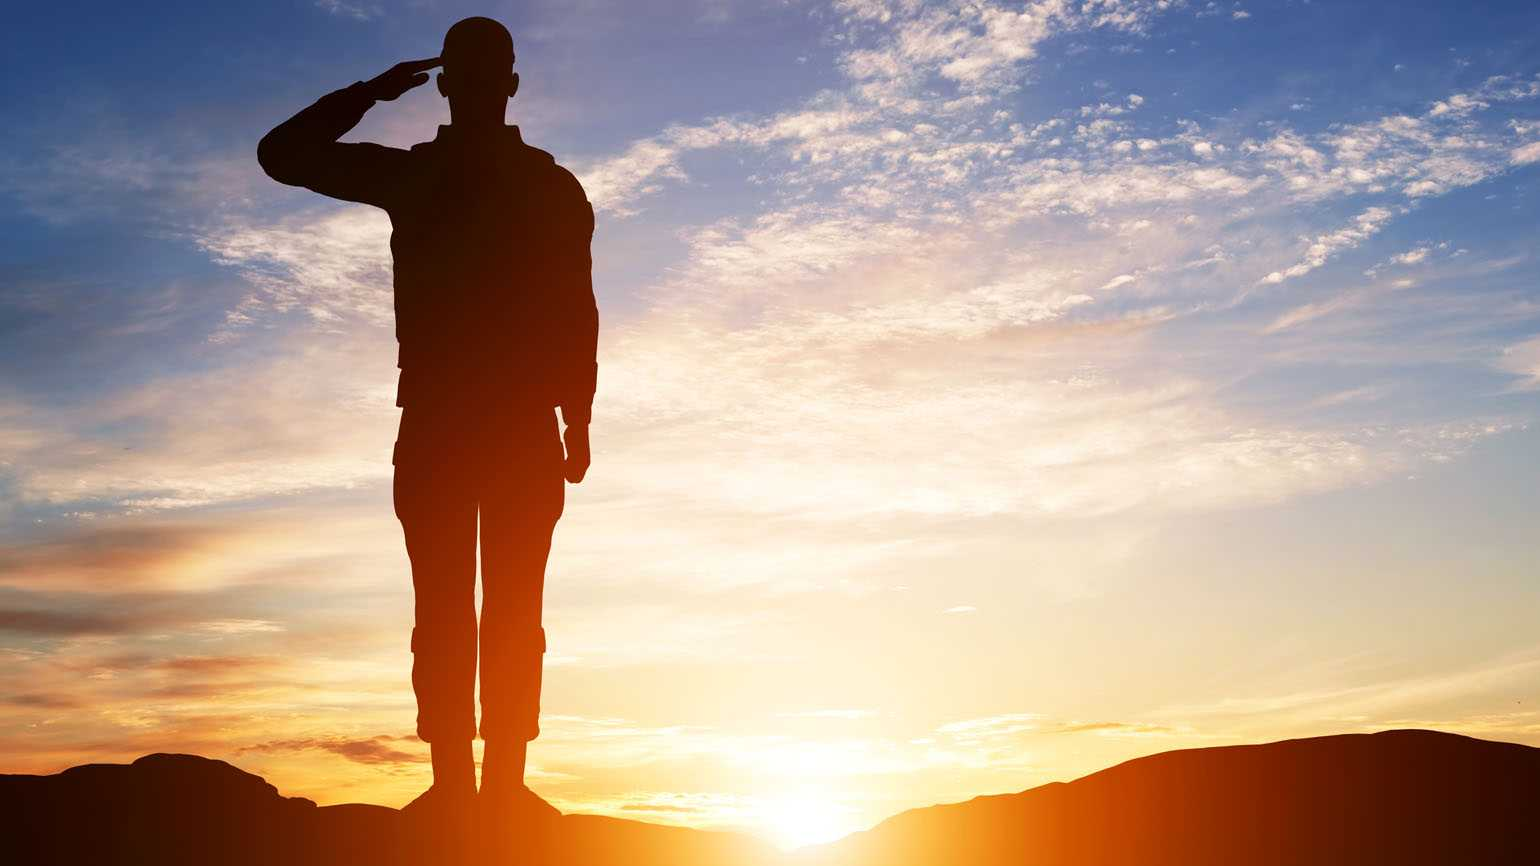 Soldier salute silhouette with sunset sky; Getty Images